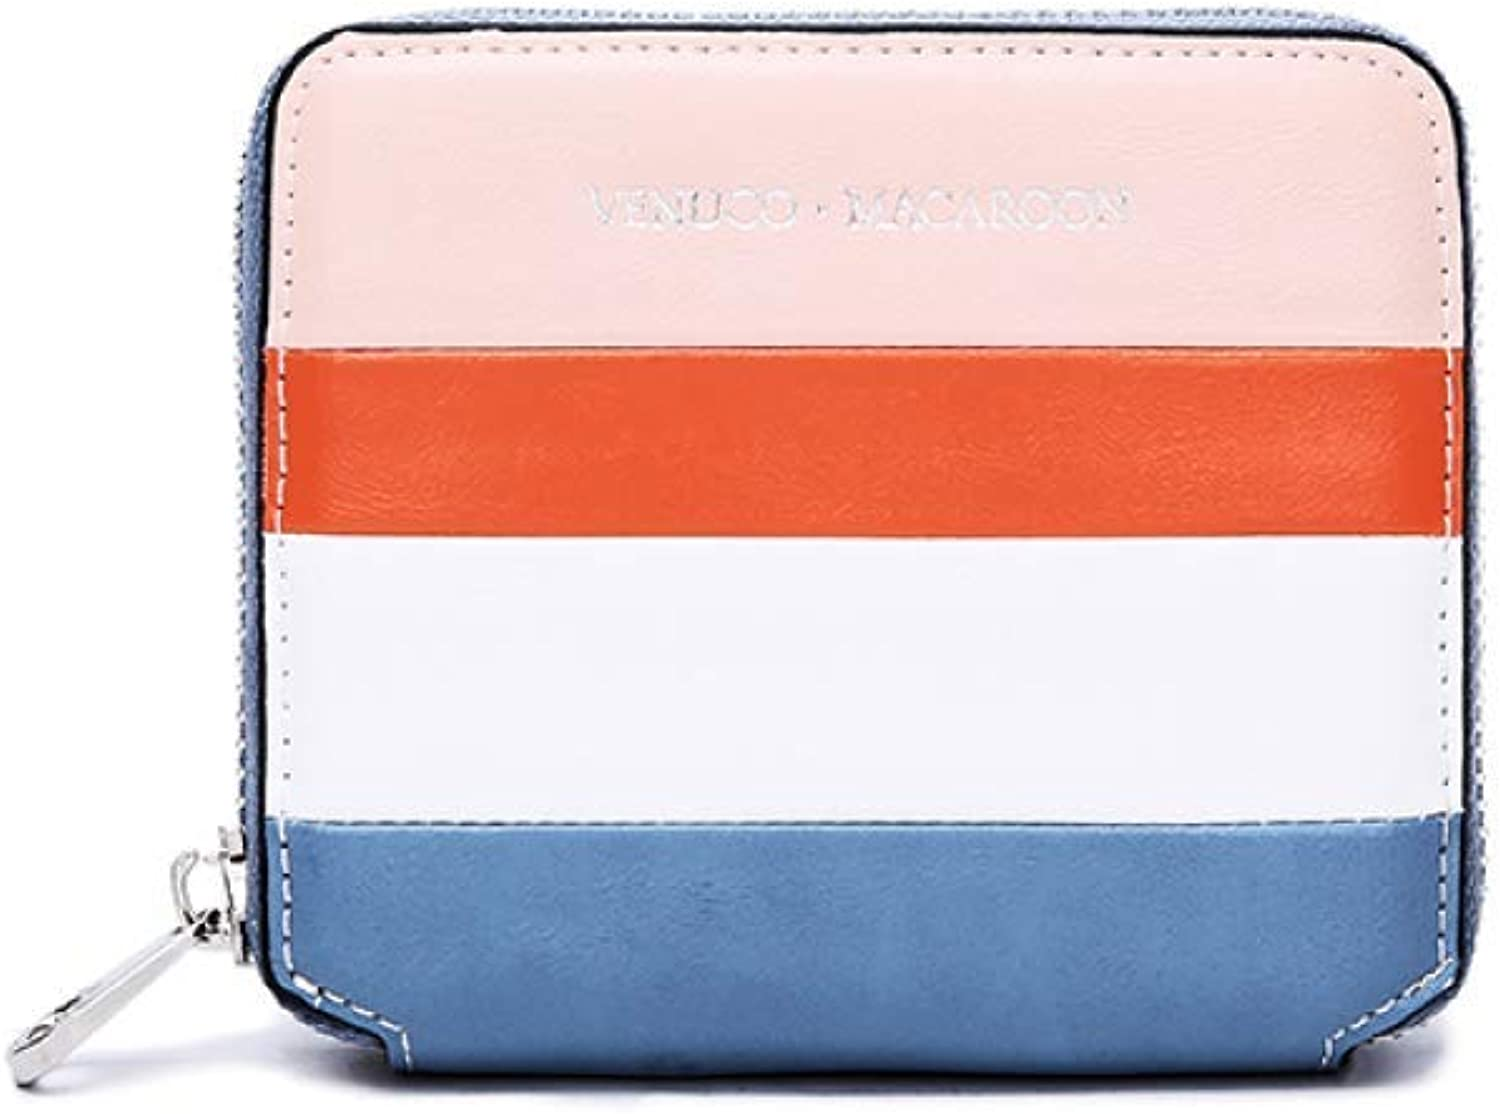 Cross Women's Wallet PU Leather Large Capacity Retro Coin Purse Student Money Clip The for Work